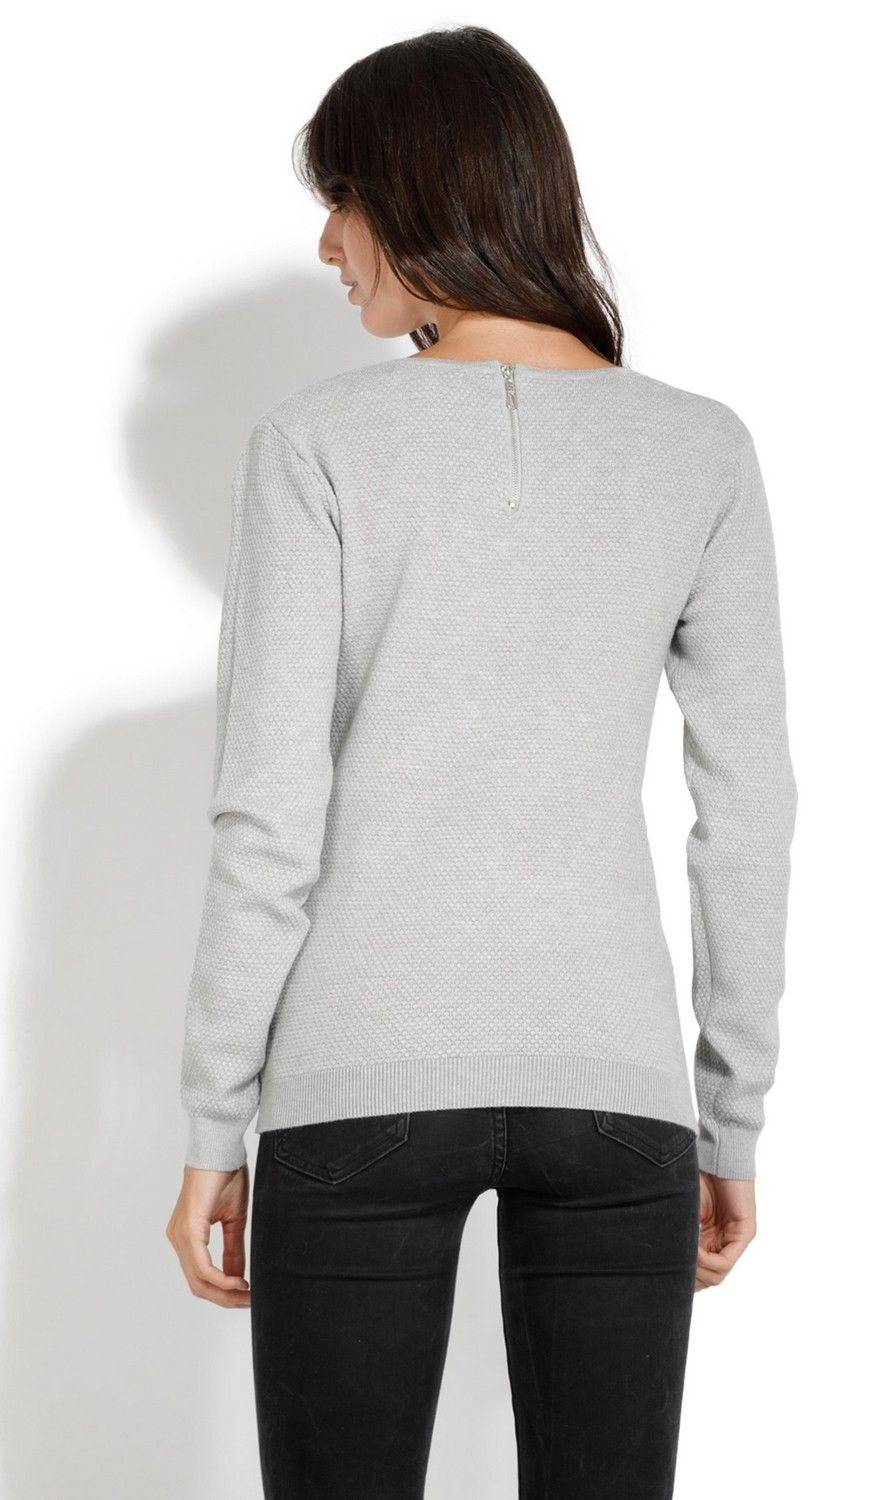 Assuili Round Neck Zip Back Sweater in Light Grey